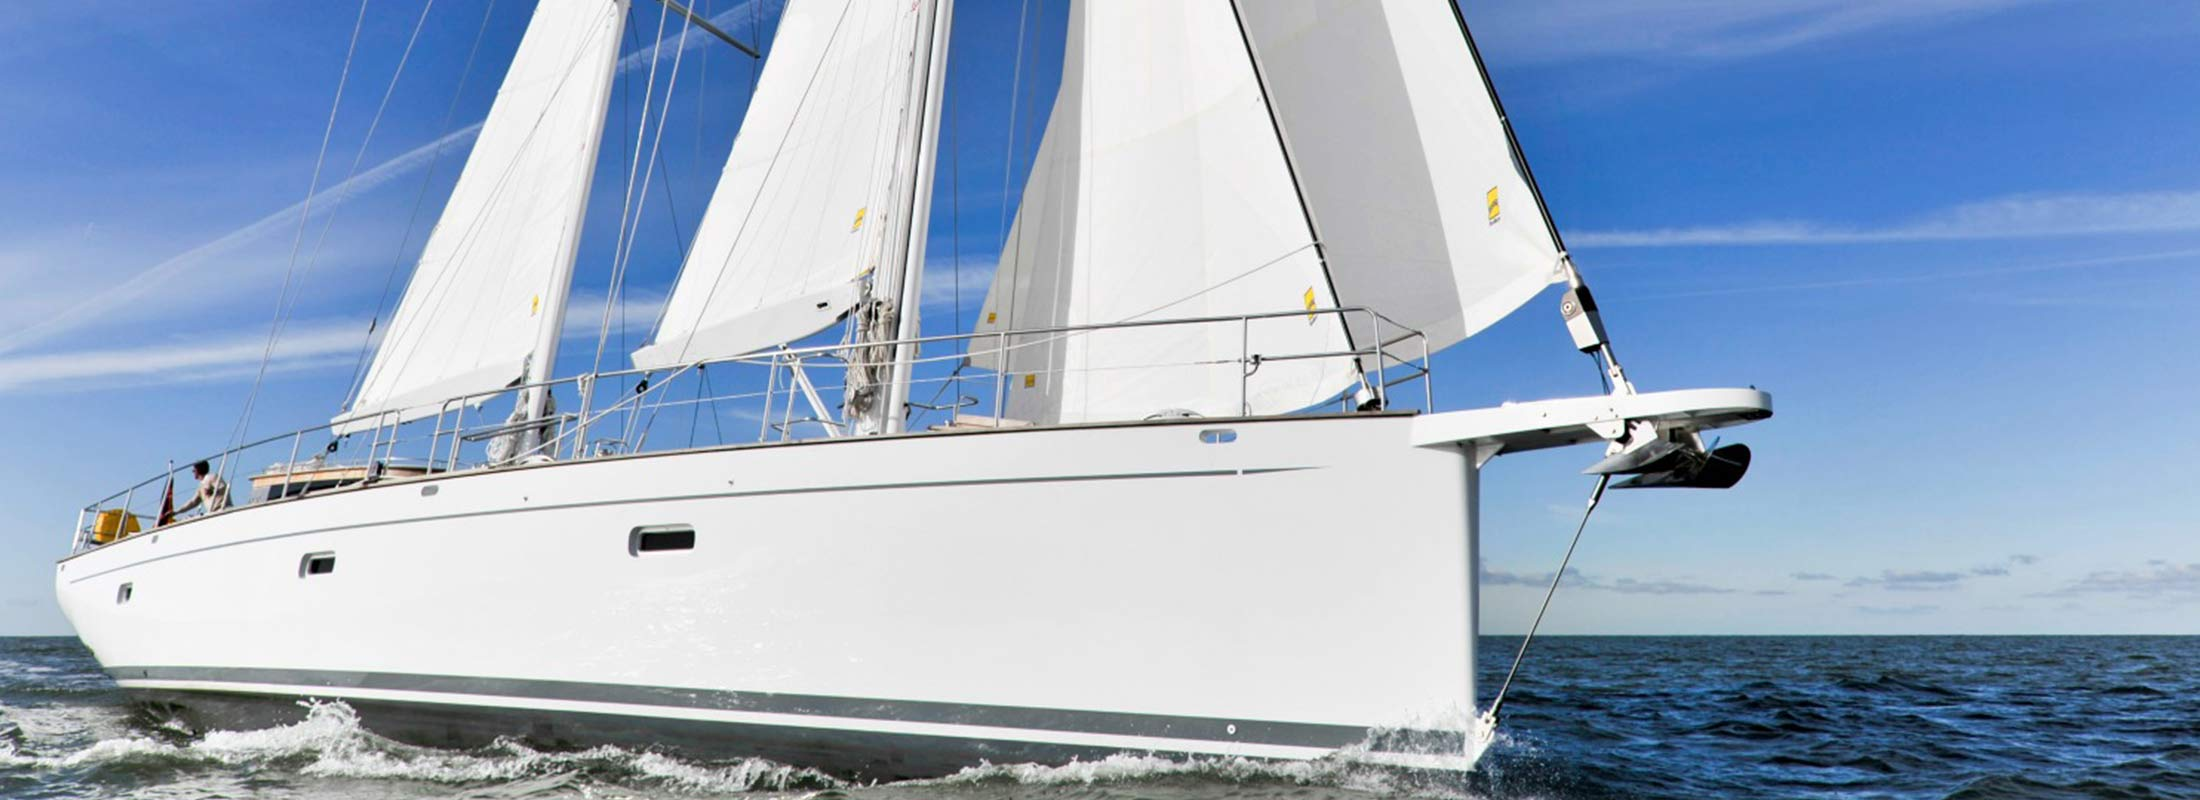 Shooting Star Sailing Yacht for Charter Mediterranean slider 1